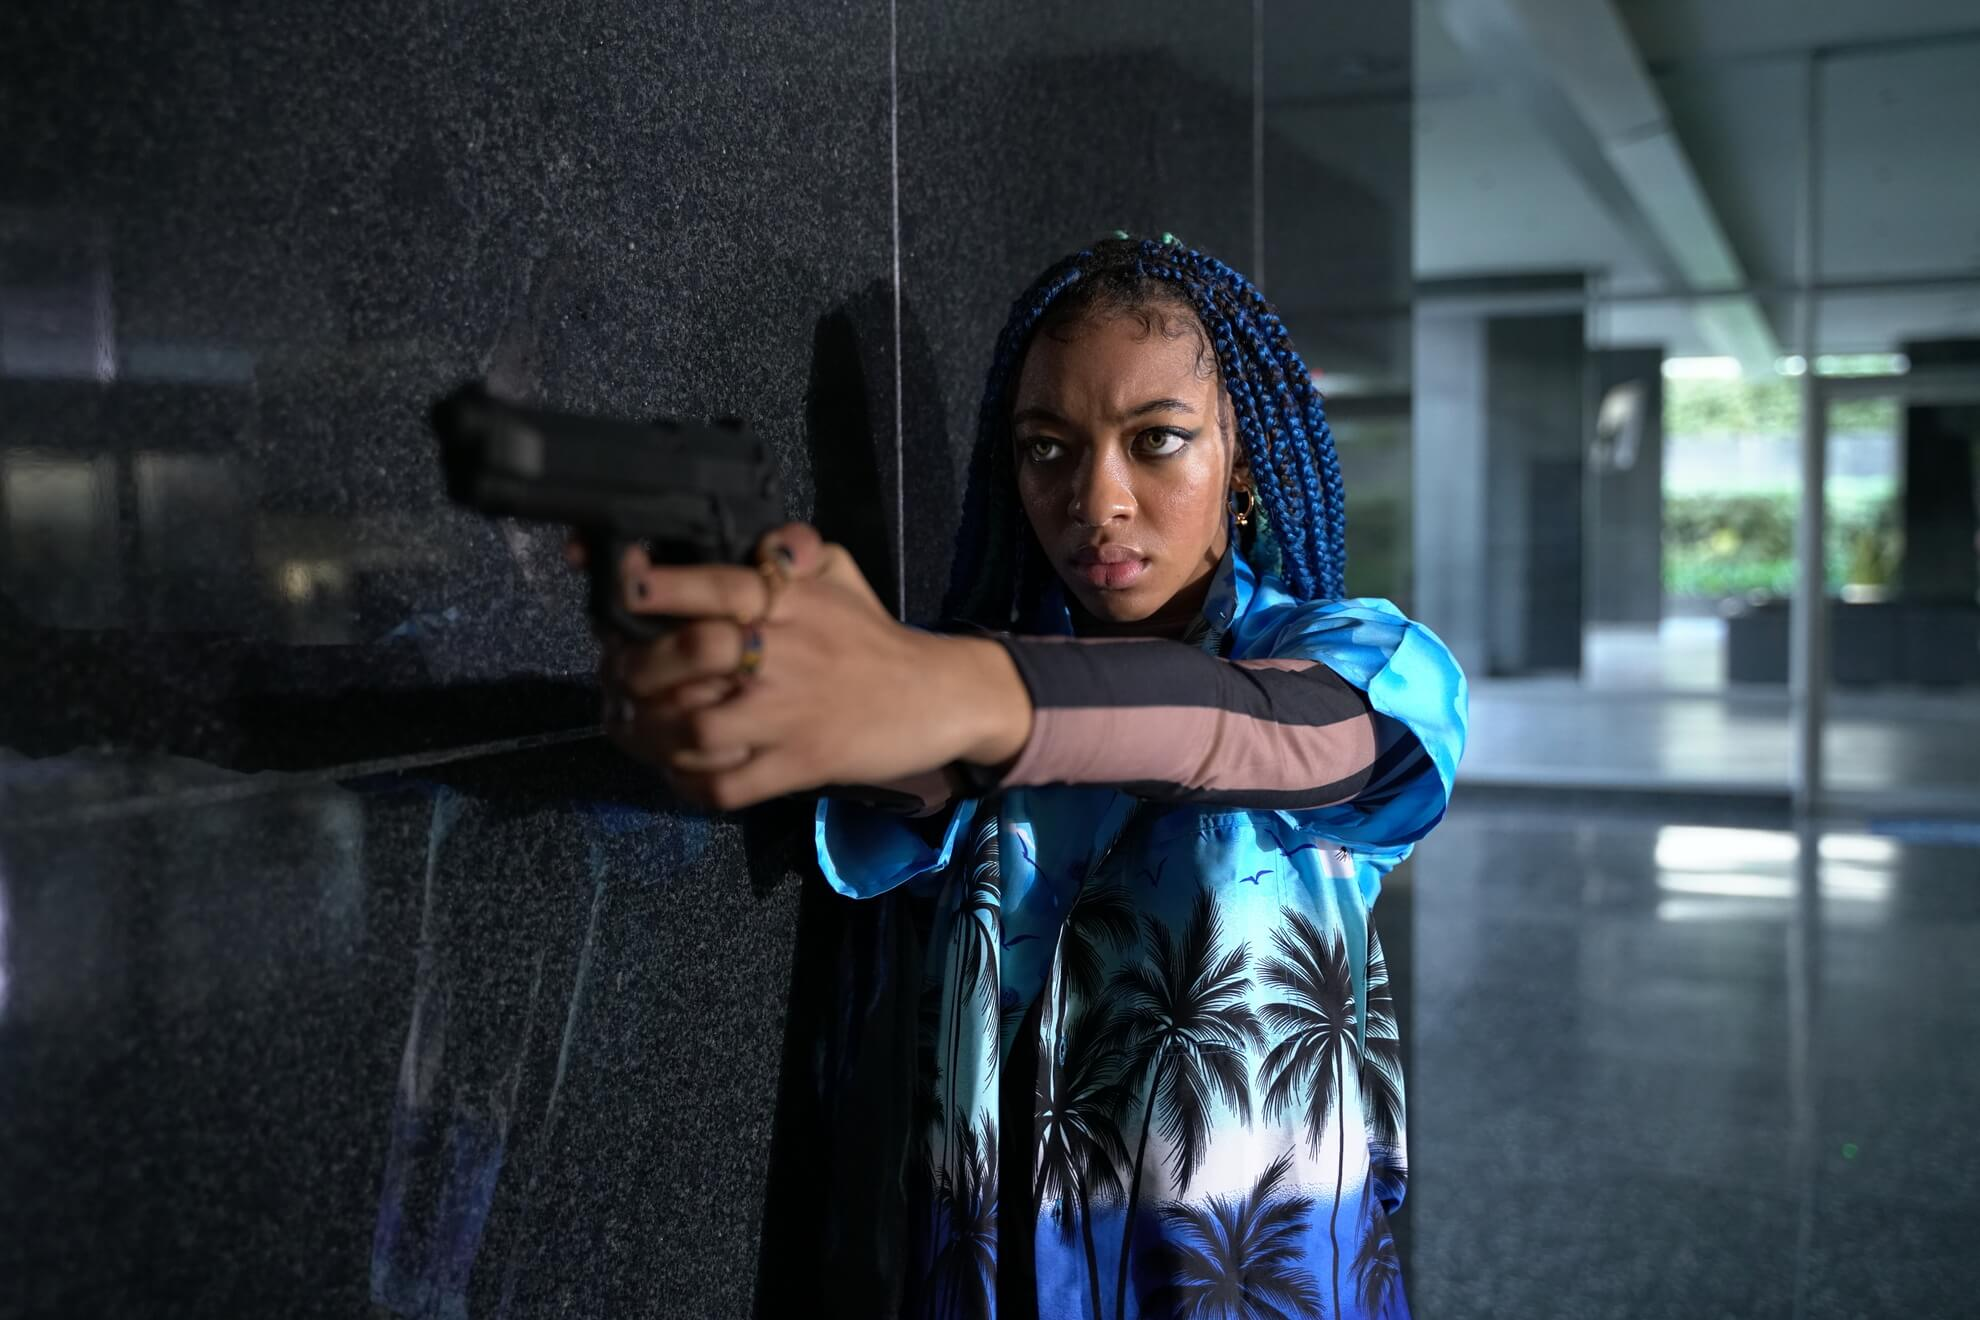 Zolee Griggs as Indigo in Archenemy